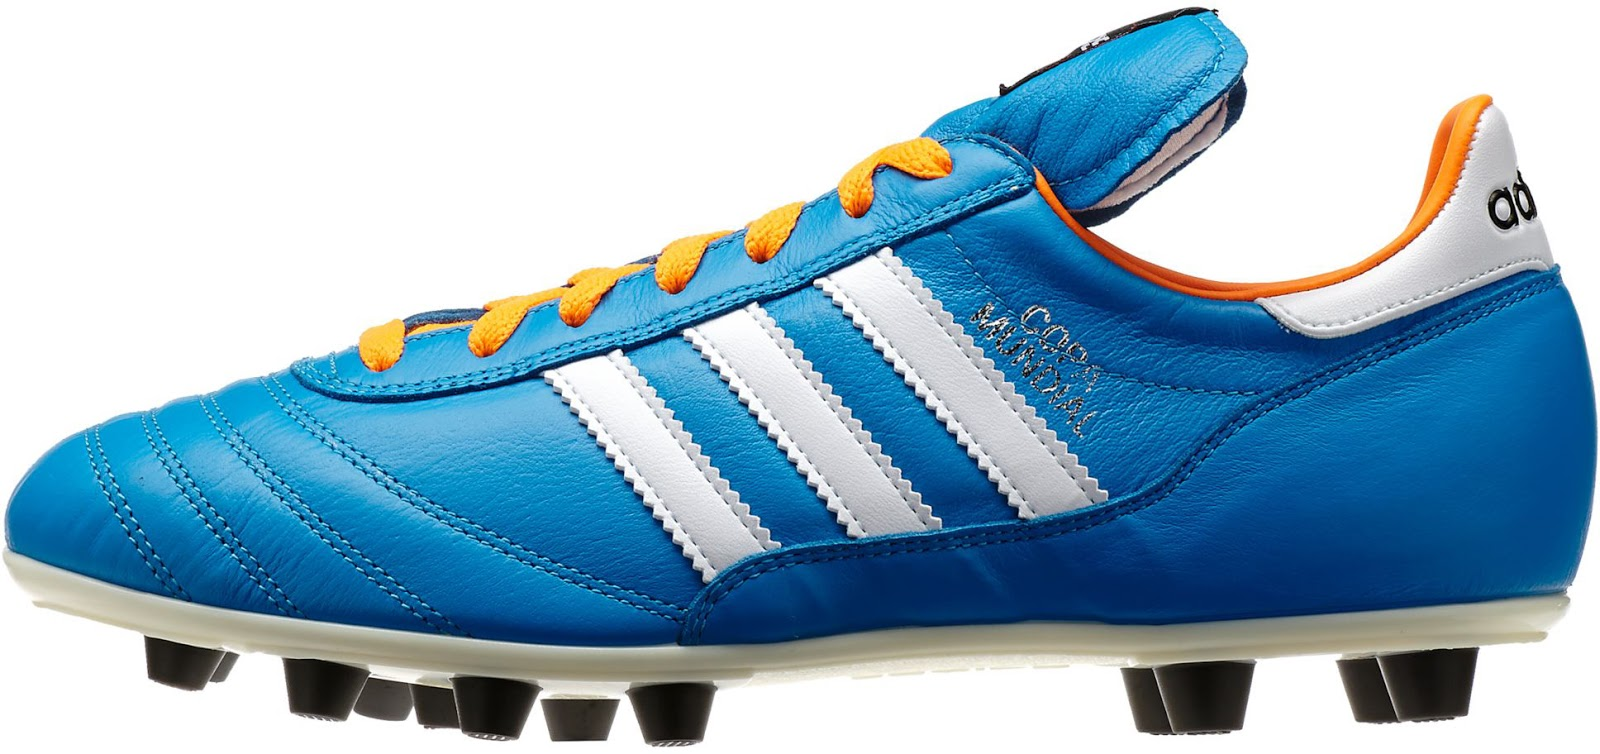 Adidas Release 5 Colorful Copa Mundial Boots! - Footy